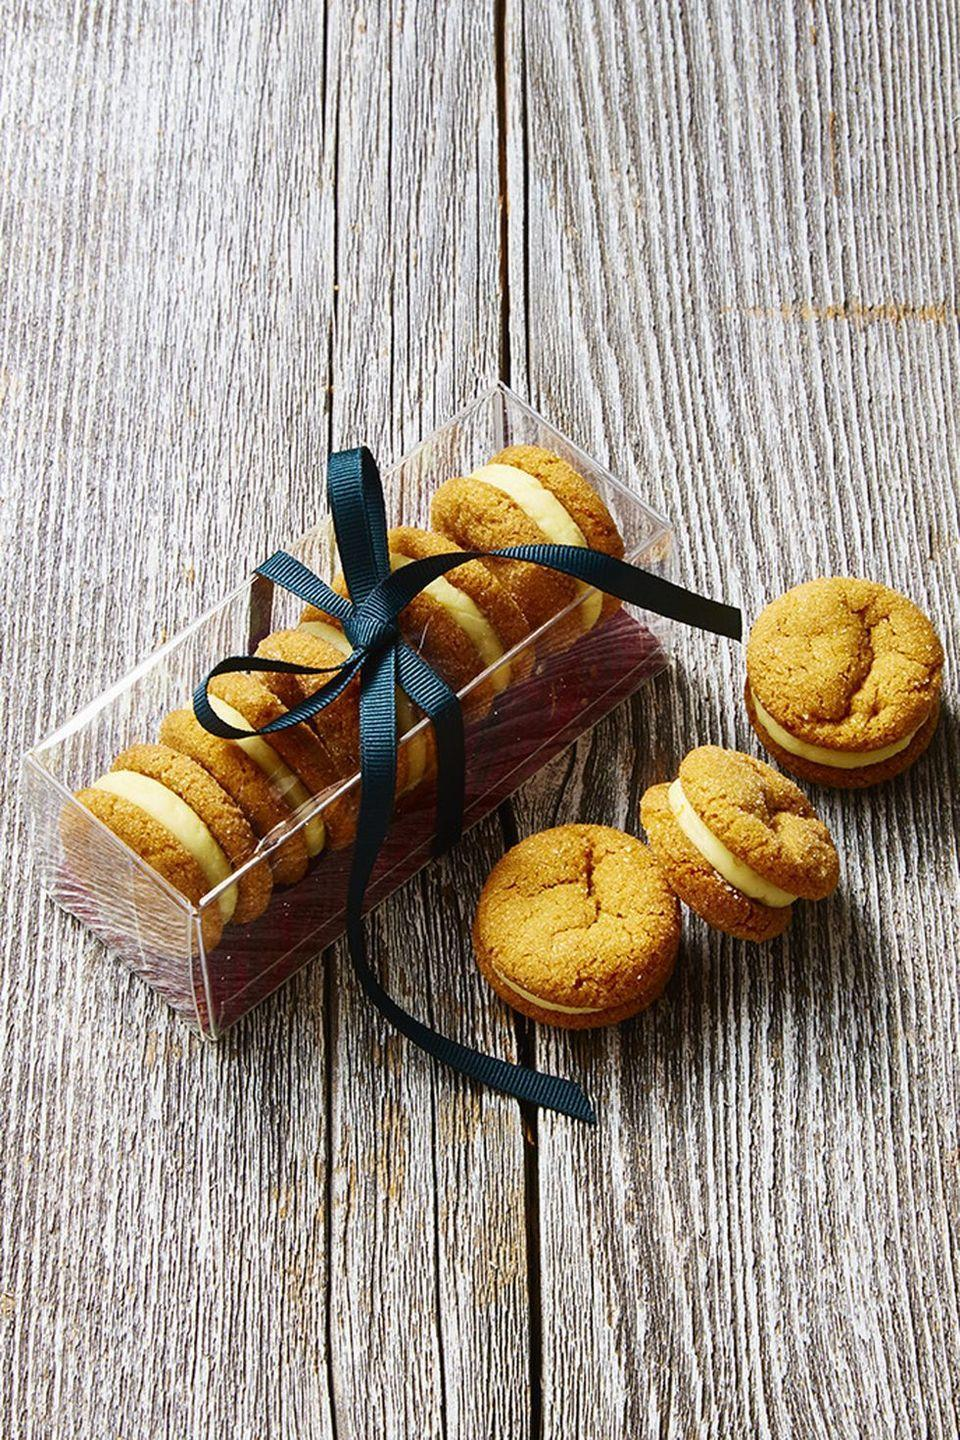 "<p>Orange buttercream sandwiched in between spicy ginger cookies just screams fall.</p><p><em><a href=""https://www.goodhousekeeping.com/food-recipes/dessert/a46921/ginger-and-cream-sandwich-cookies-recipe/"" rel=""nofollow noopener"" target=""_blank"" data-ylk=""slk:Get the recipe for Ginger and Cream Sandwich Cookies »"" class=""link rapid-noclick-resp"">Get the recipe for Ginger and Cream Sandwich Cookies »</a></em></p>"